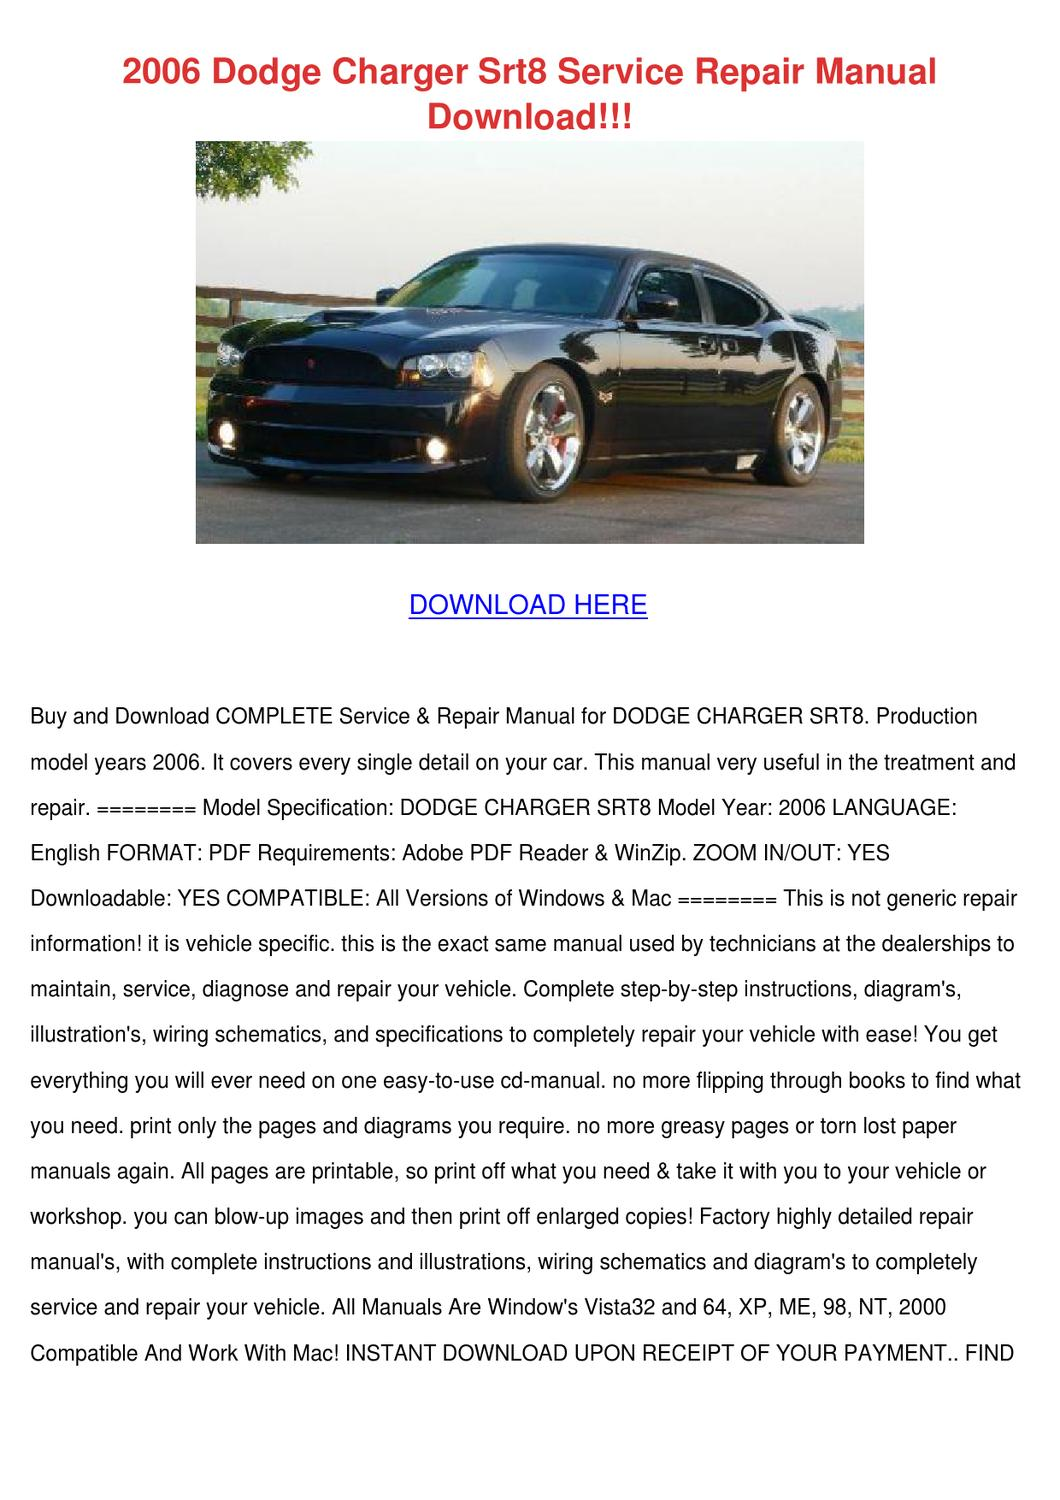 2006 Dodge Charger Srt8 Service Repair Manual By Kimheim